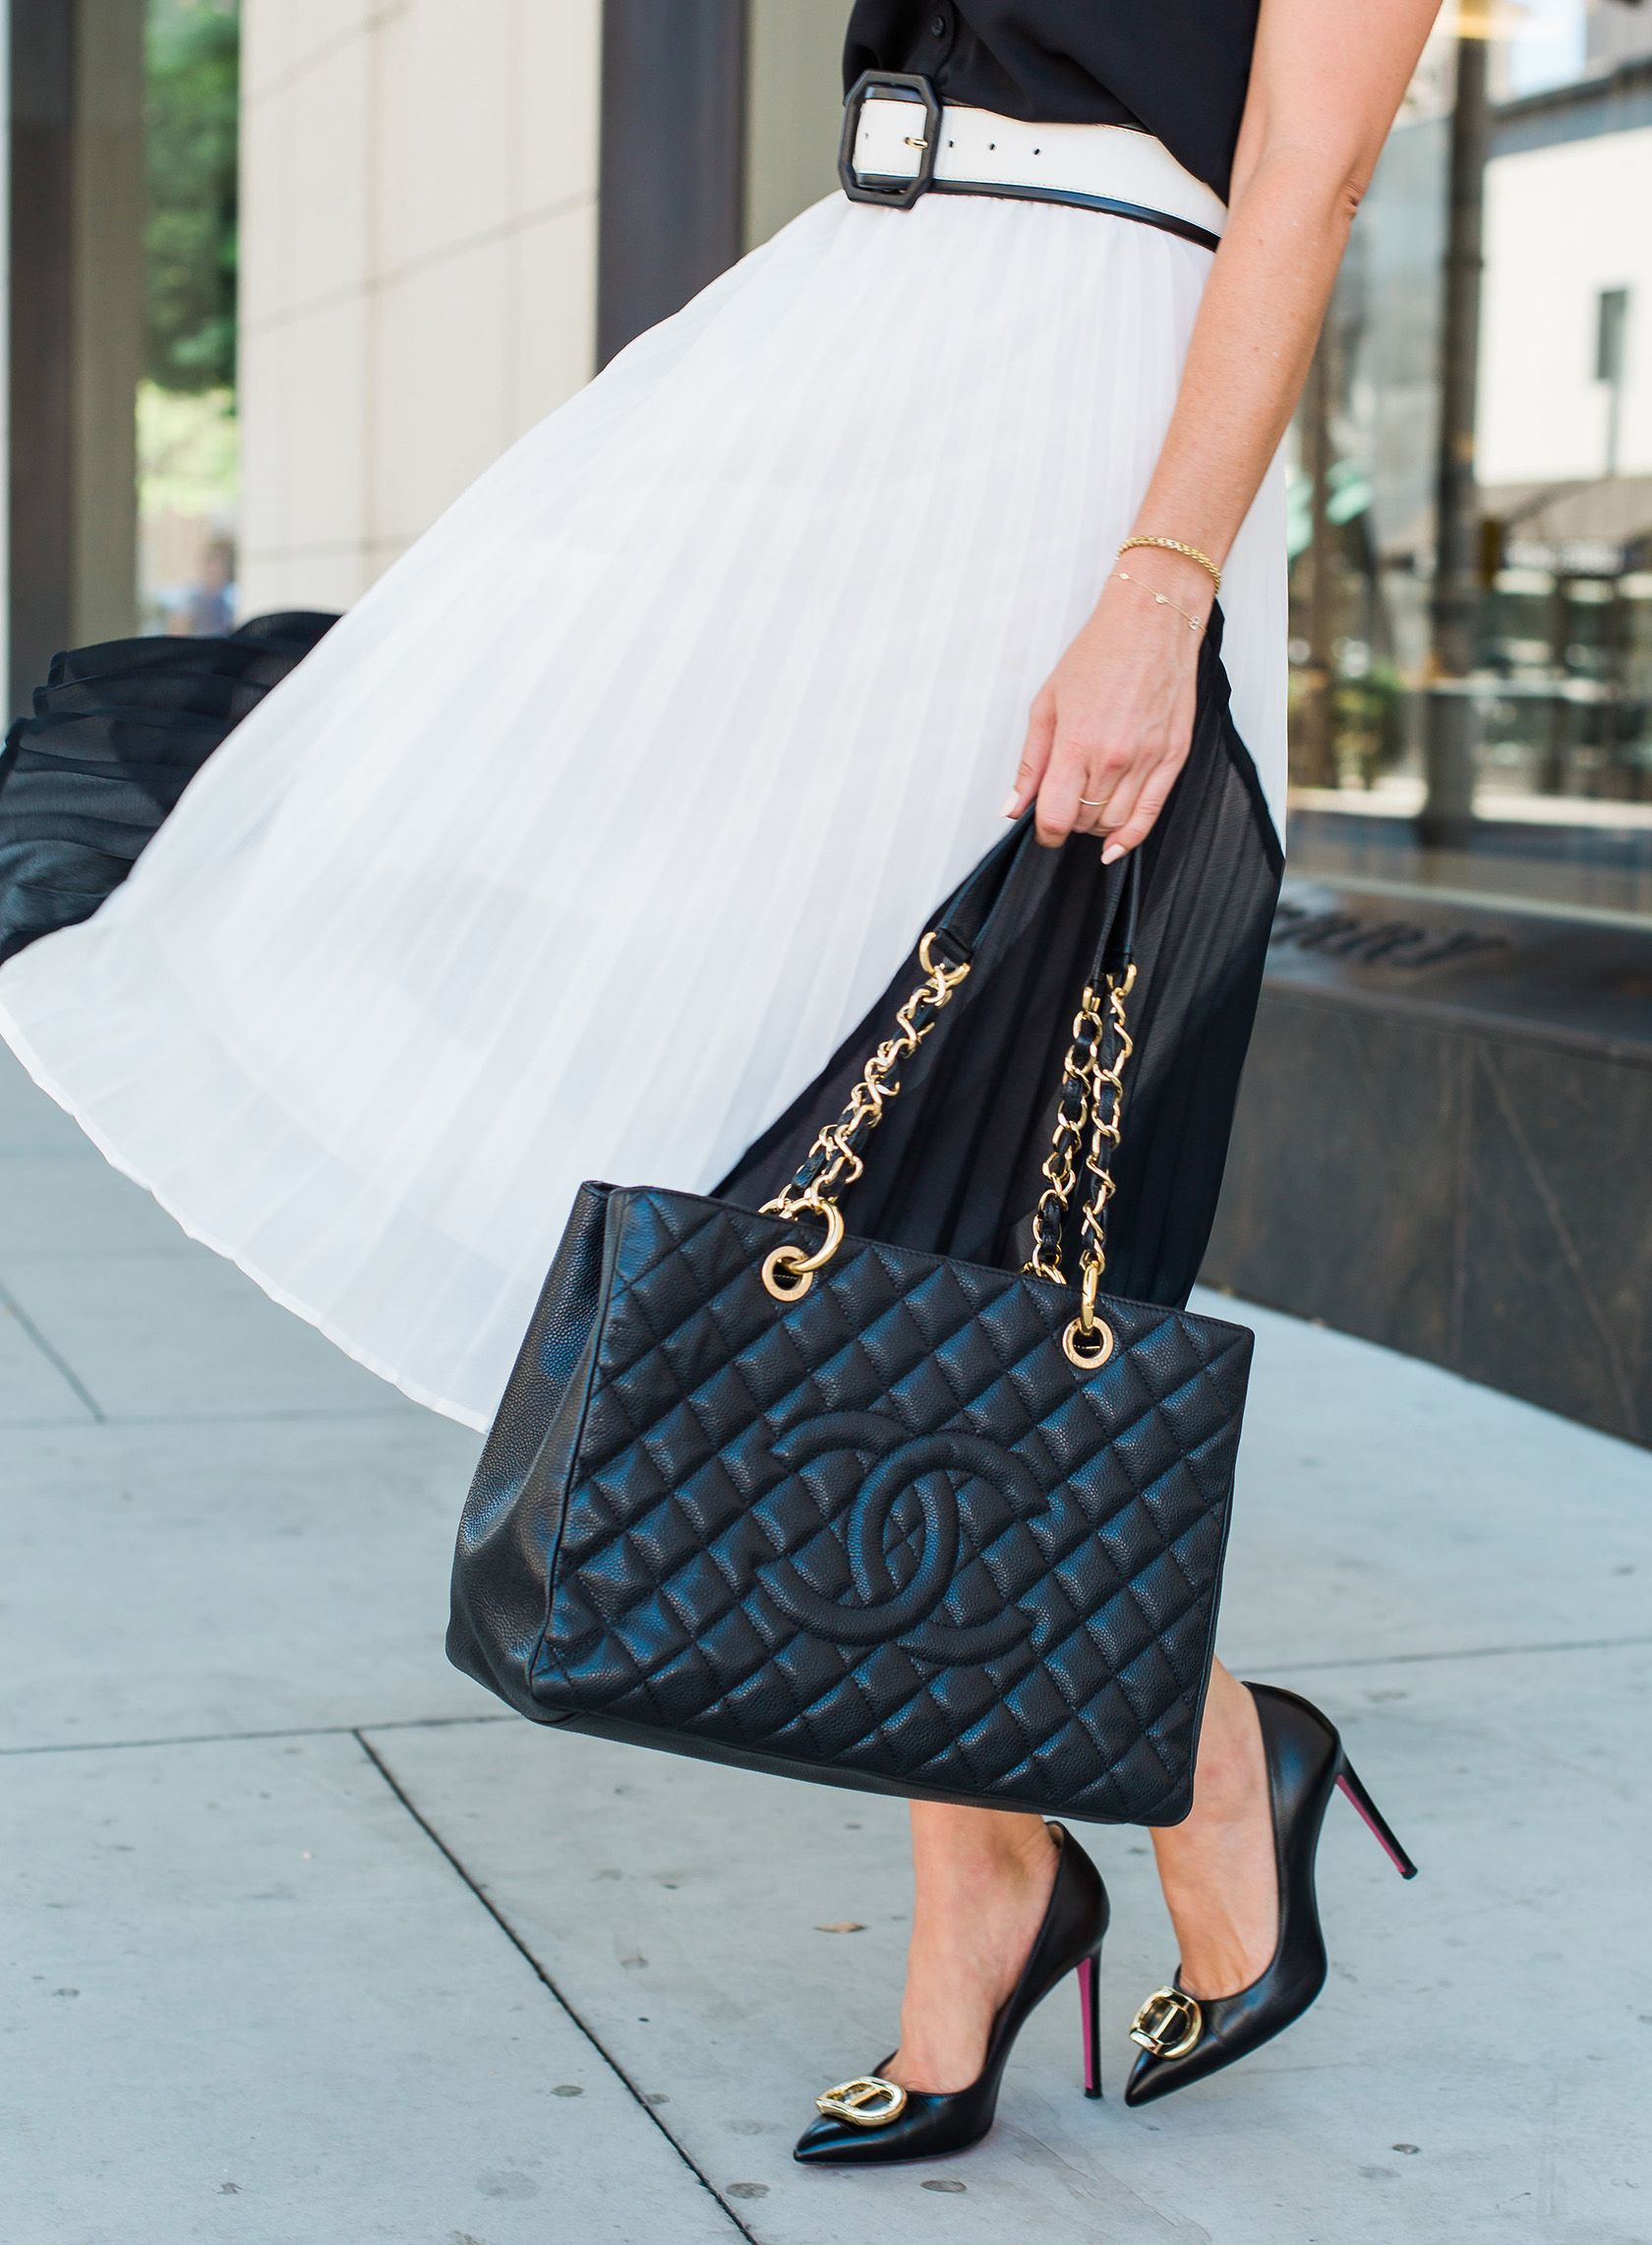 2b01c8e848f4 Sydne Style reviews chanel gst black bag for classic handbags  #blackandwhite #skirts #chanel #chanelbag